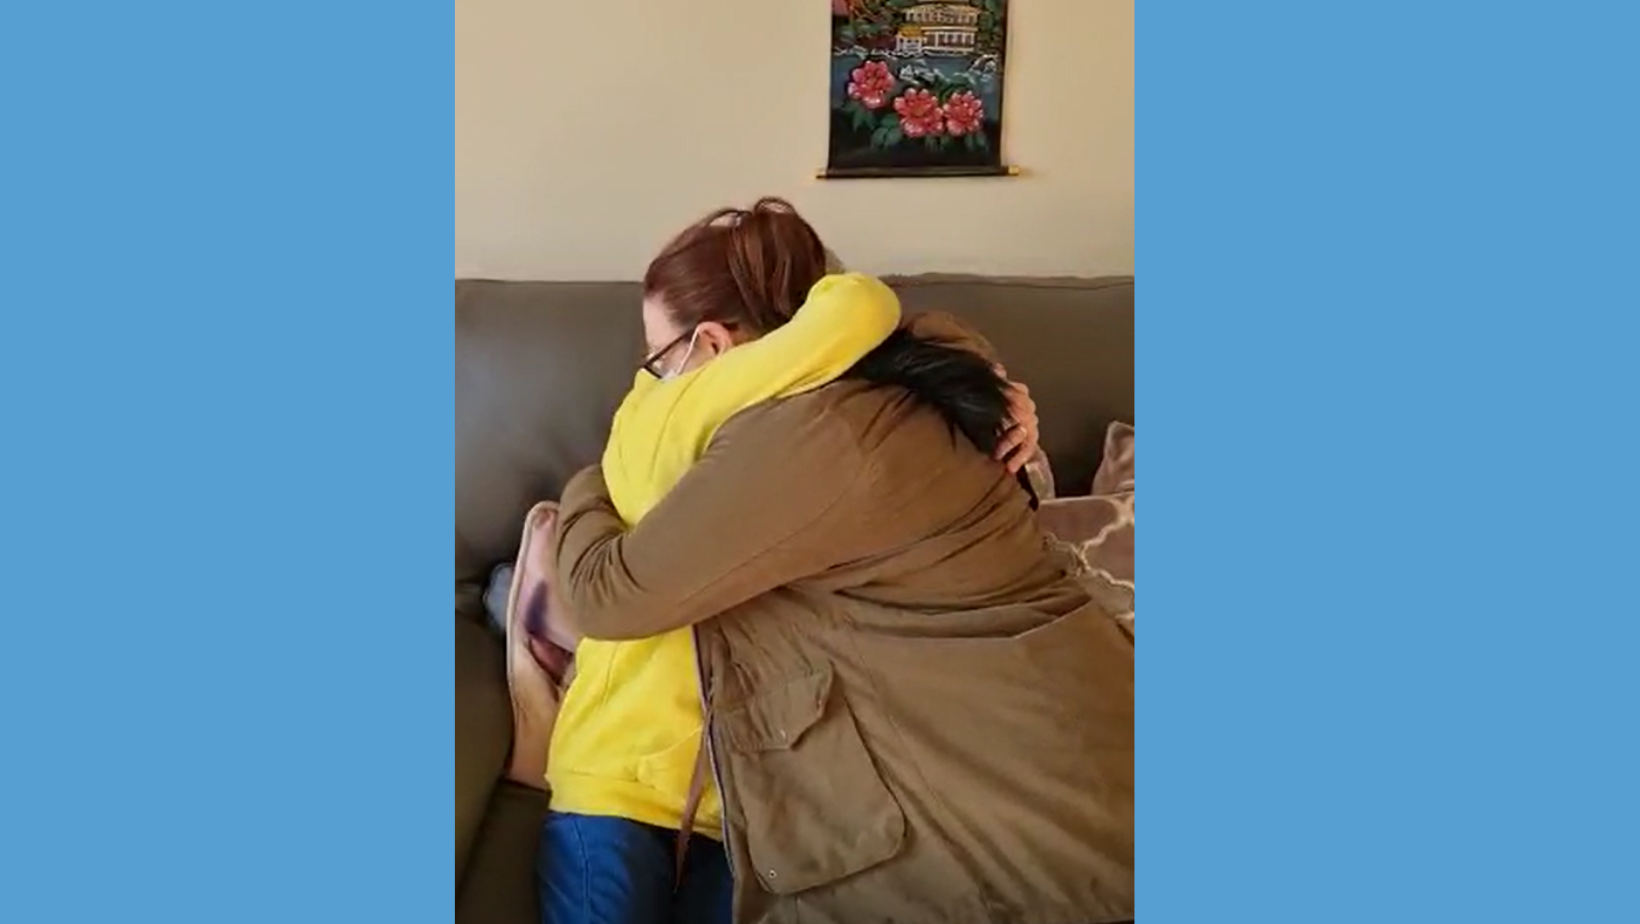 Care staff reunite mother and daughter